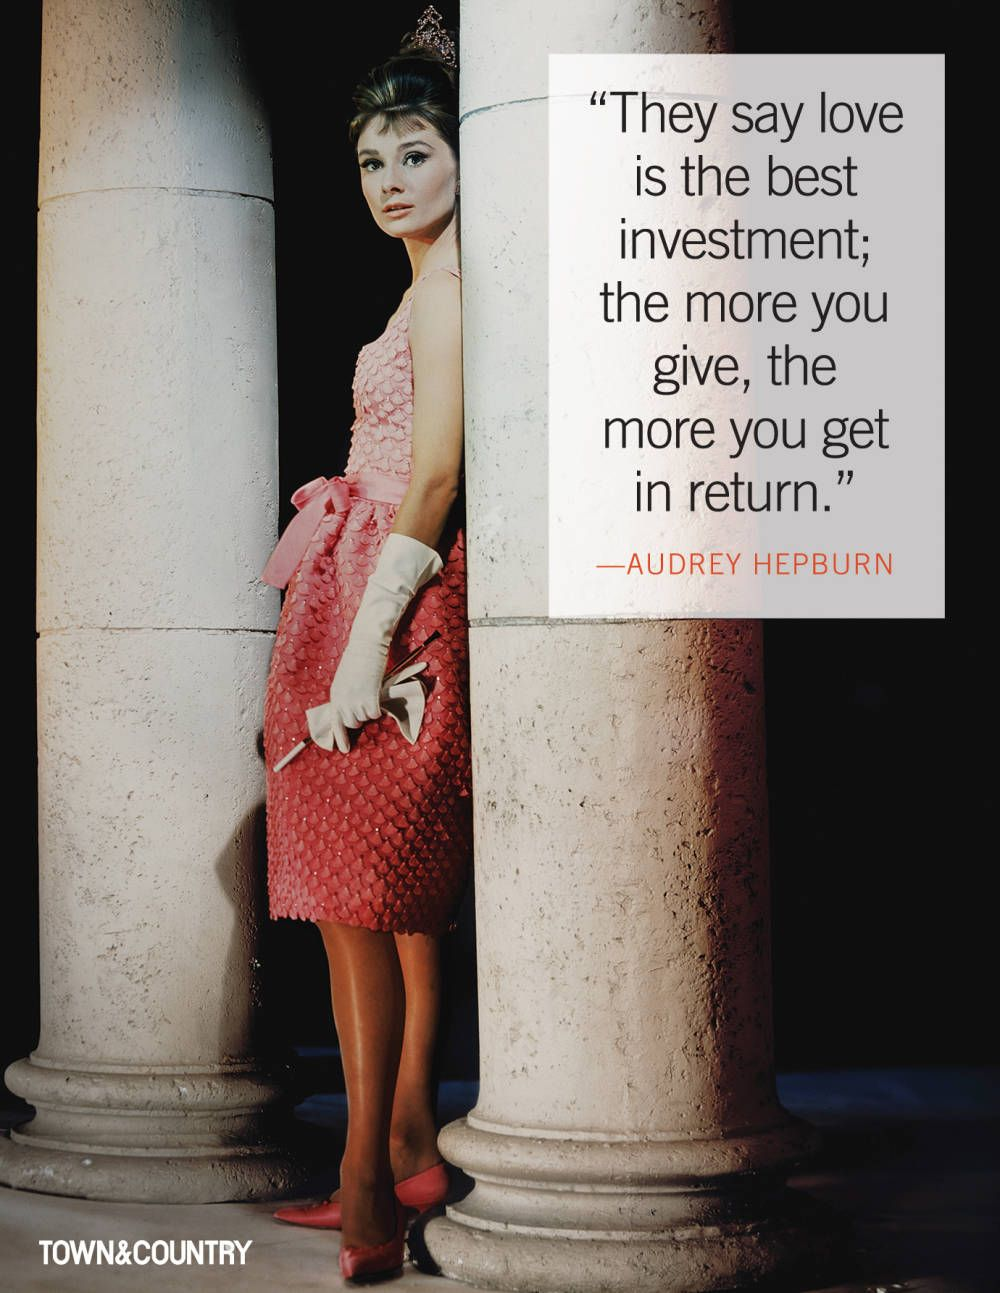 7 Of The Most Glamorous Audrey Hepburn Quotes Audrey Hepburn Quotes Audrey Hepburn Happy Birthday Woman